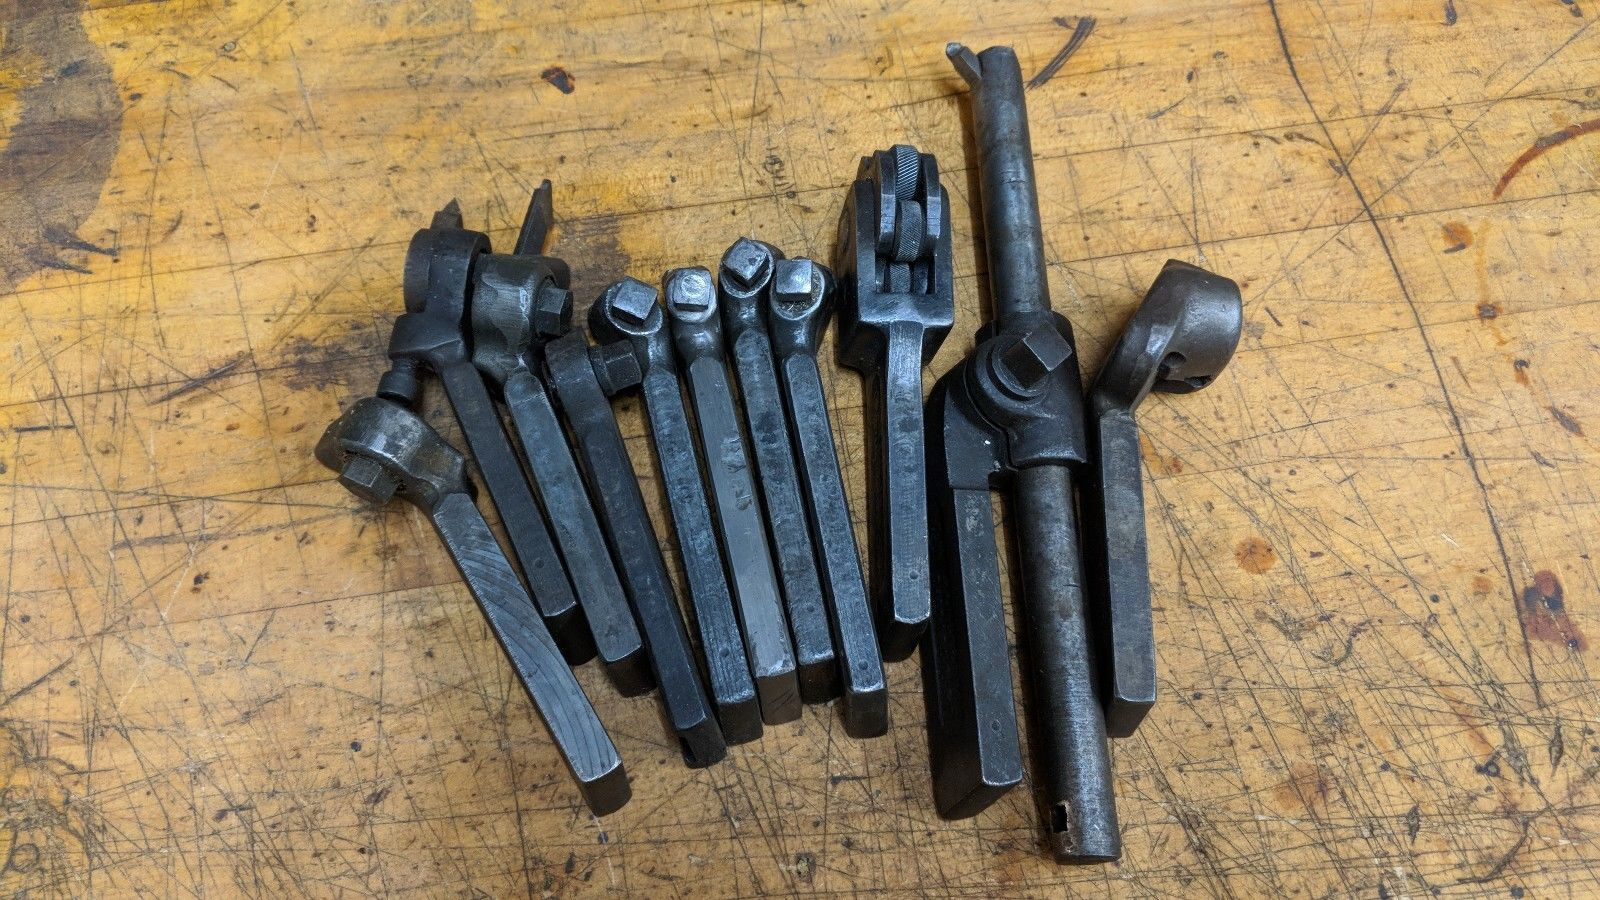 11 ASSORTED METAL LATHE LANTERN TOOL POST BIT HOLDERS ARMSTRONG JH WILLIAMS SET6